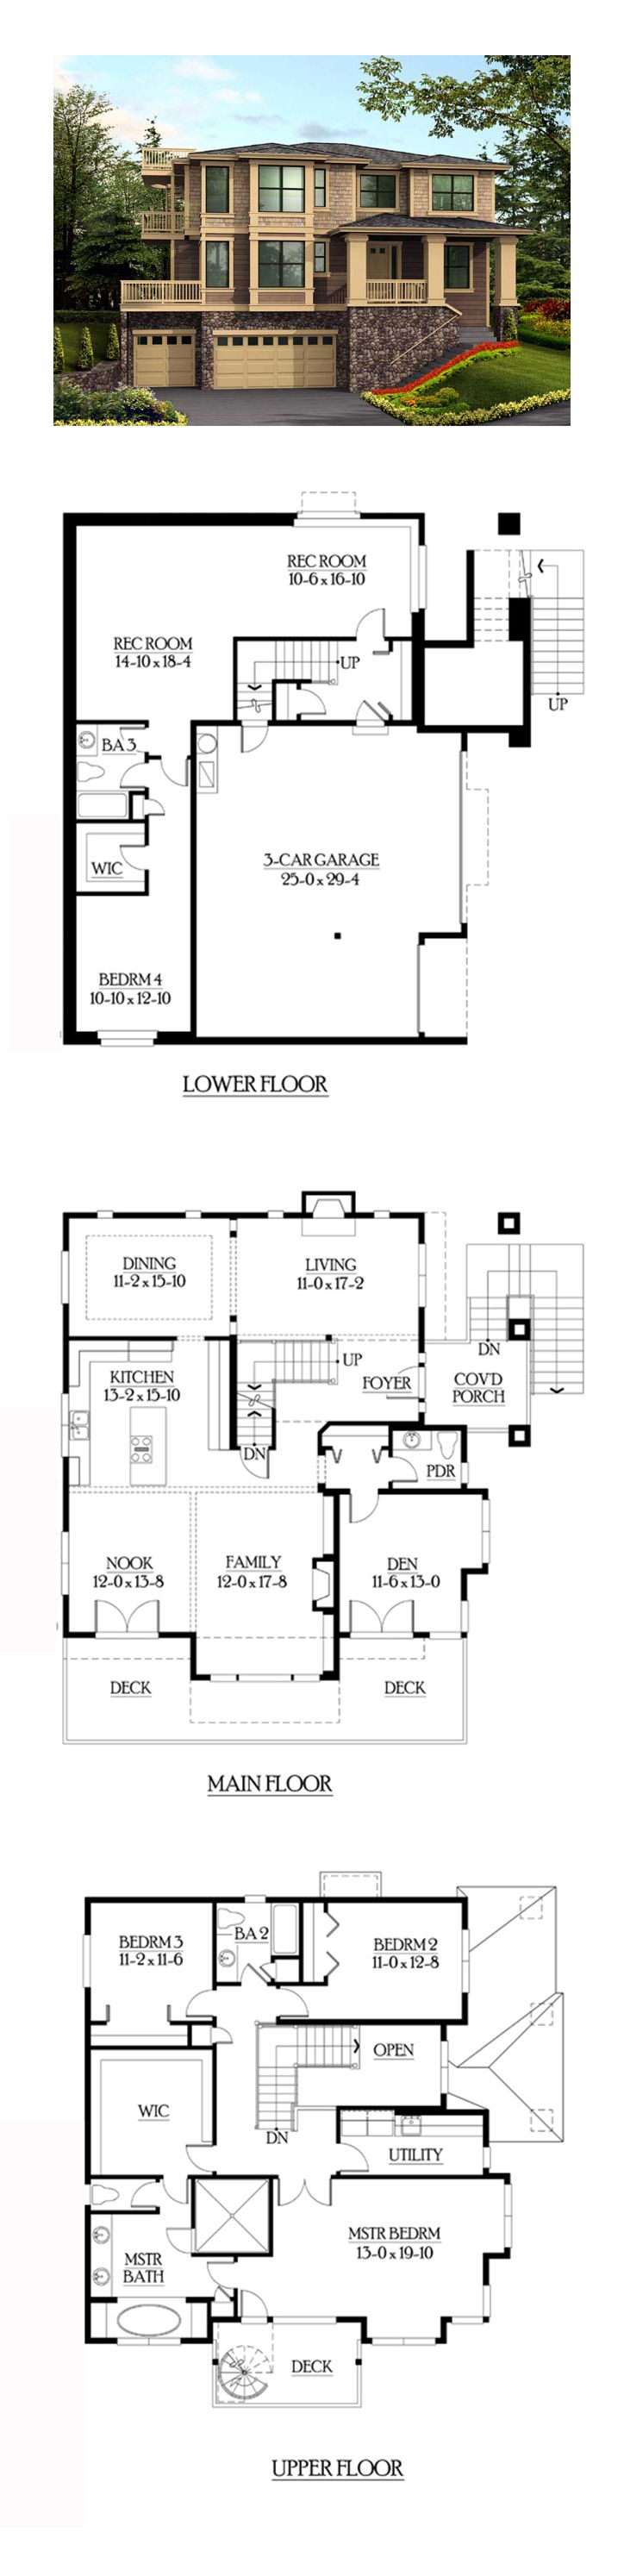 Delicieux Finished Basement COOL House Plan ID: Chp 39324 | Total Living Area: 3946  Sq. Ft., 4 Bedrooms And 3.5 Bathrooms. #finishedbasement